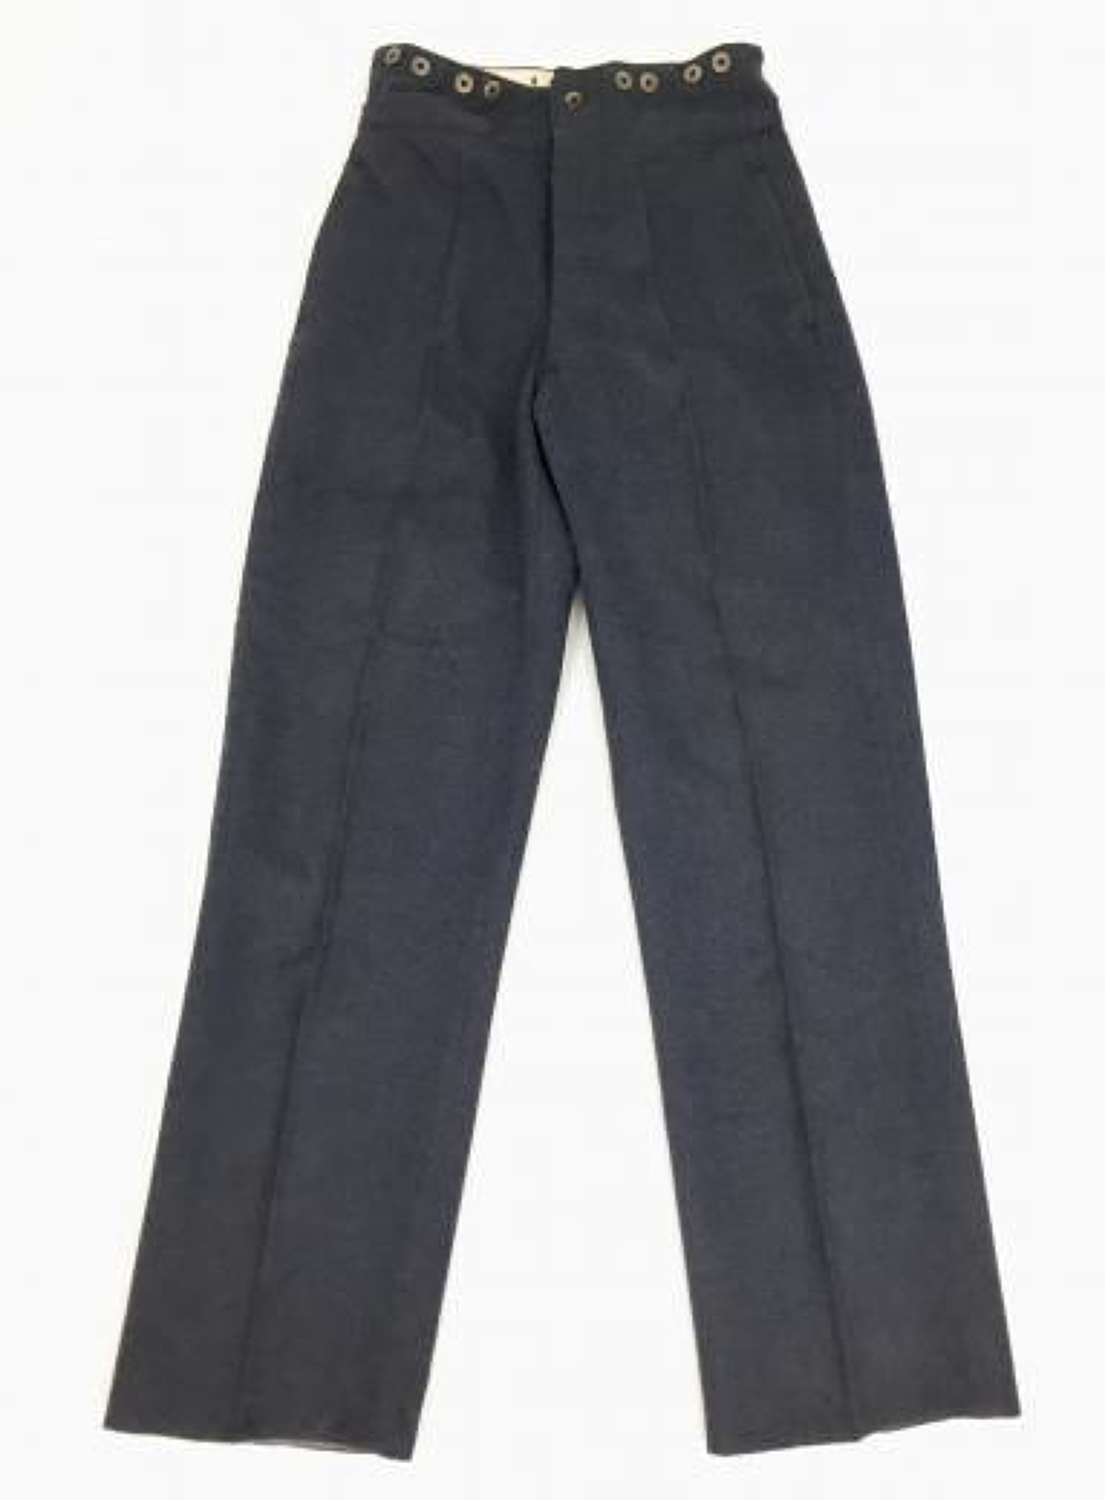 Scarce 1942 Dated RCAF Ordinary Airman's Trousers